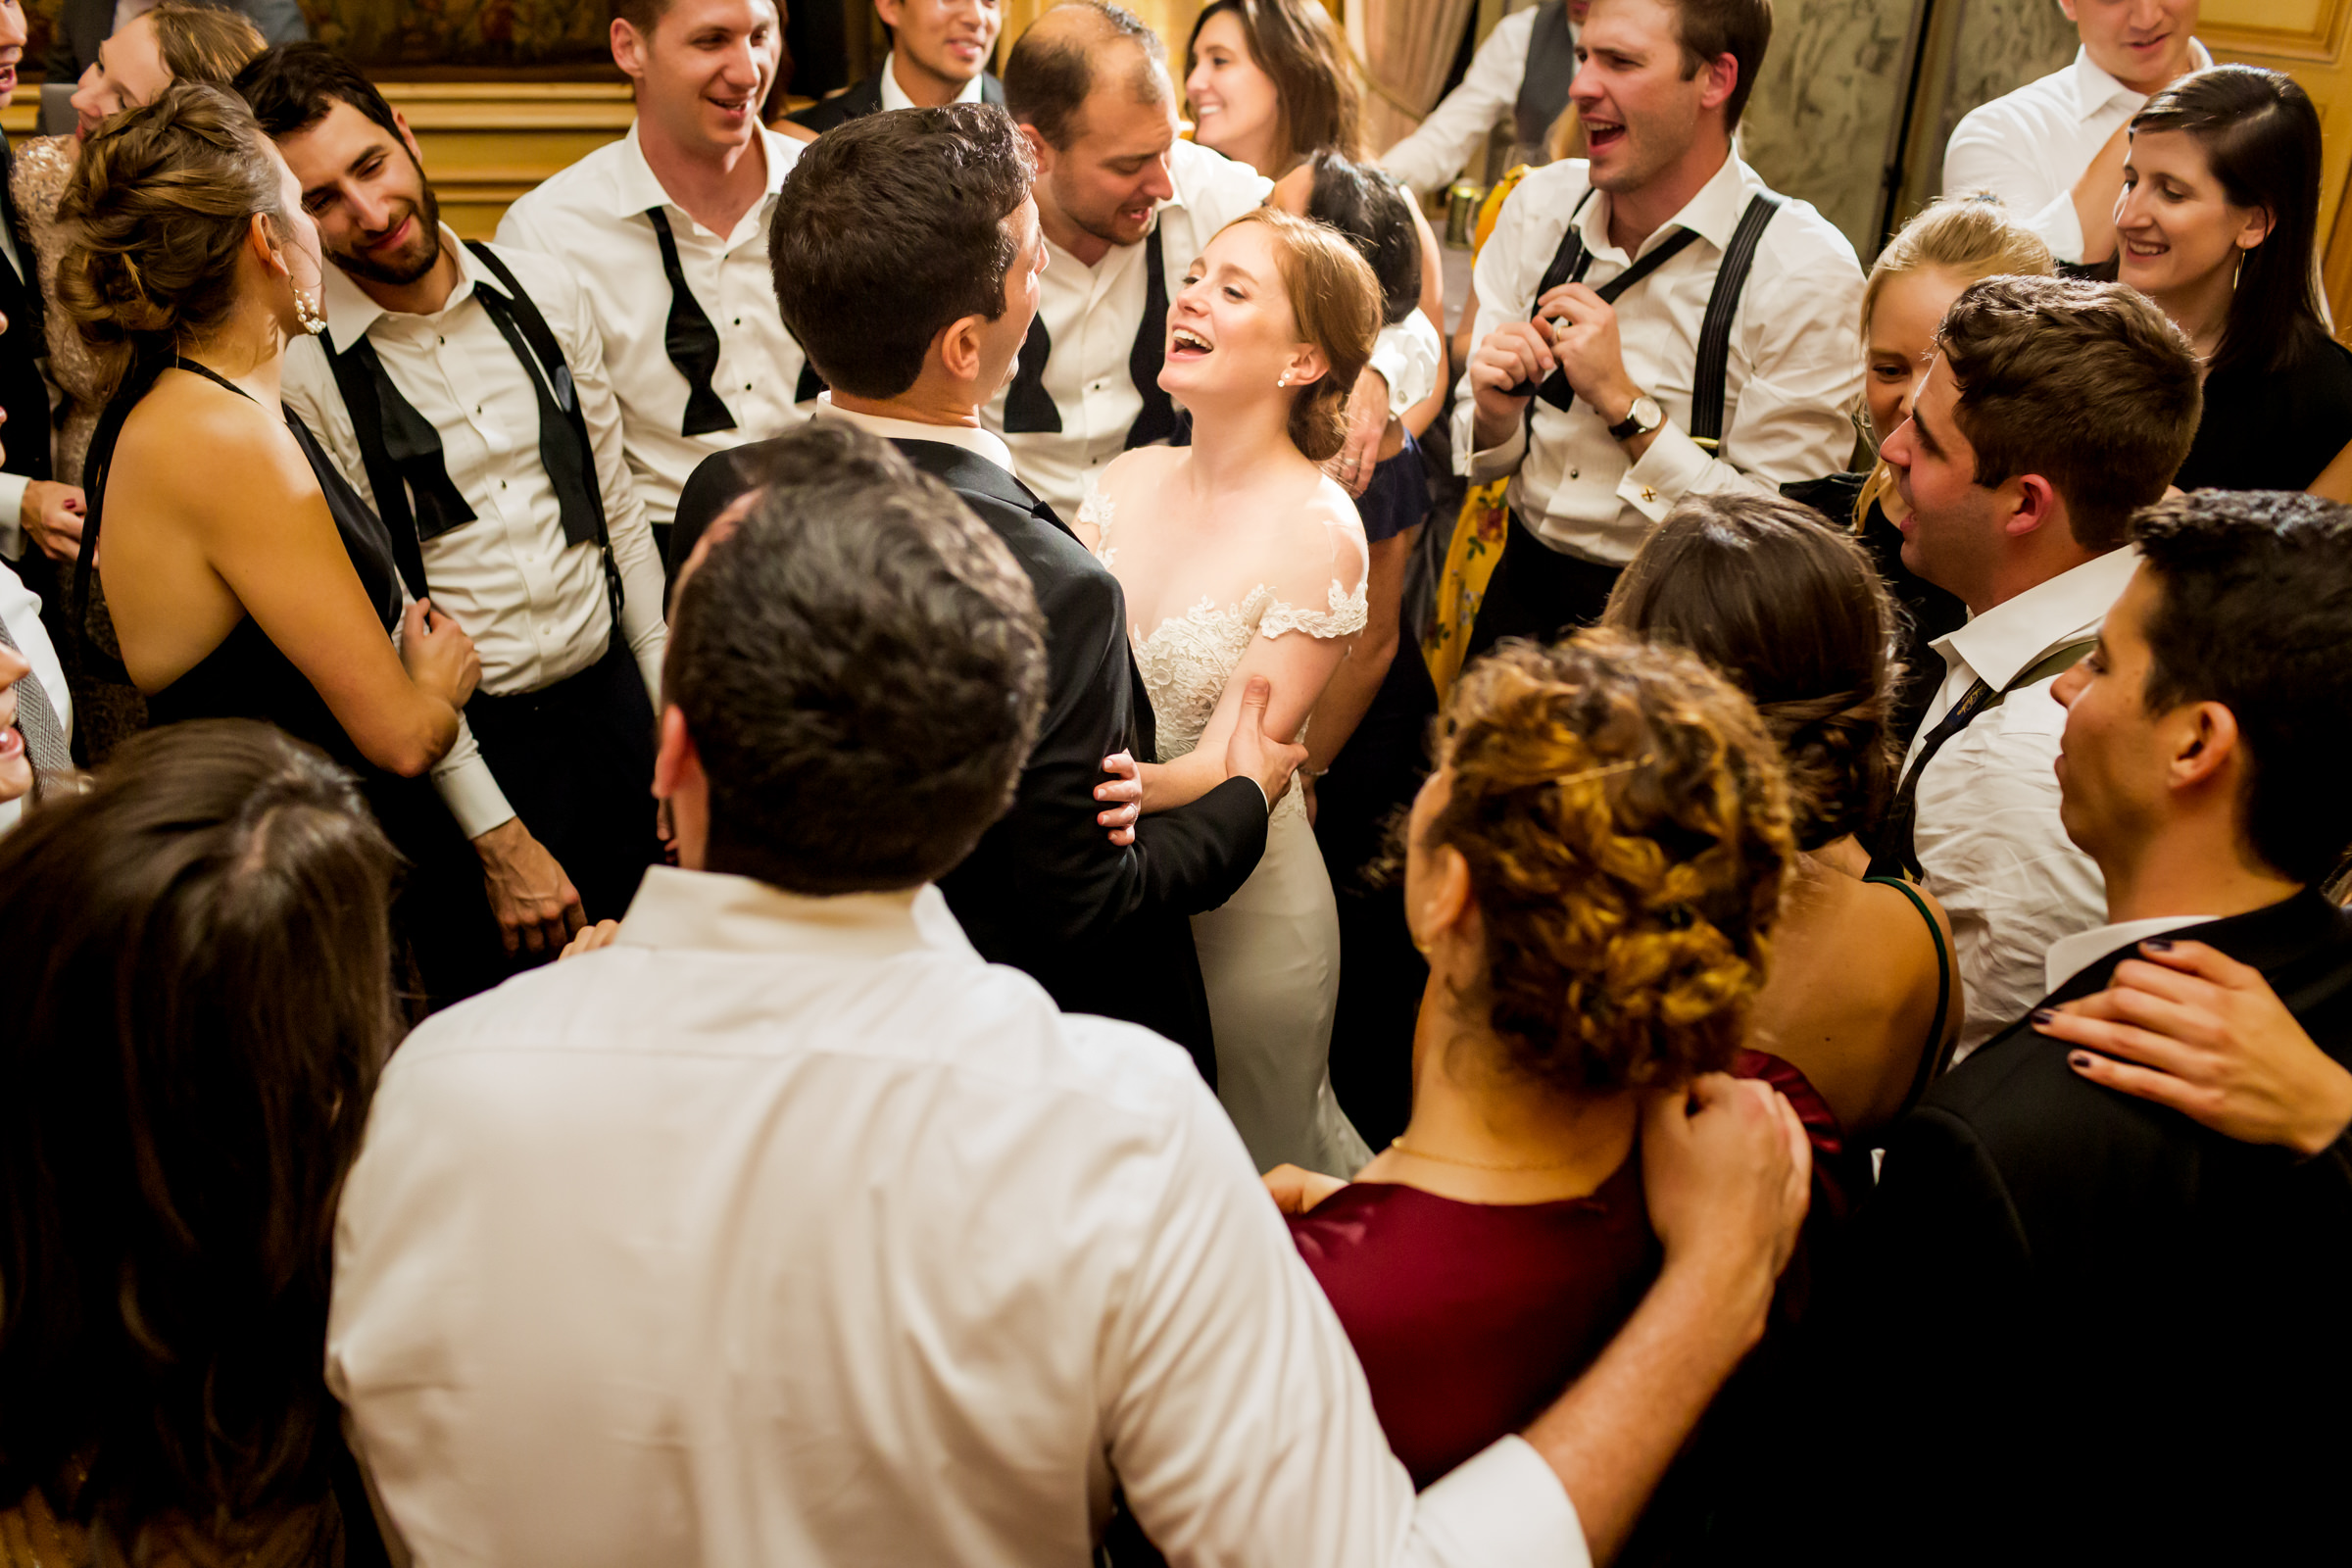 Couple amidst guests - photo by Procopio Photography